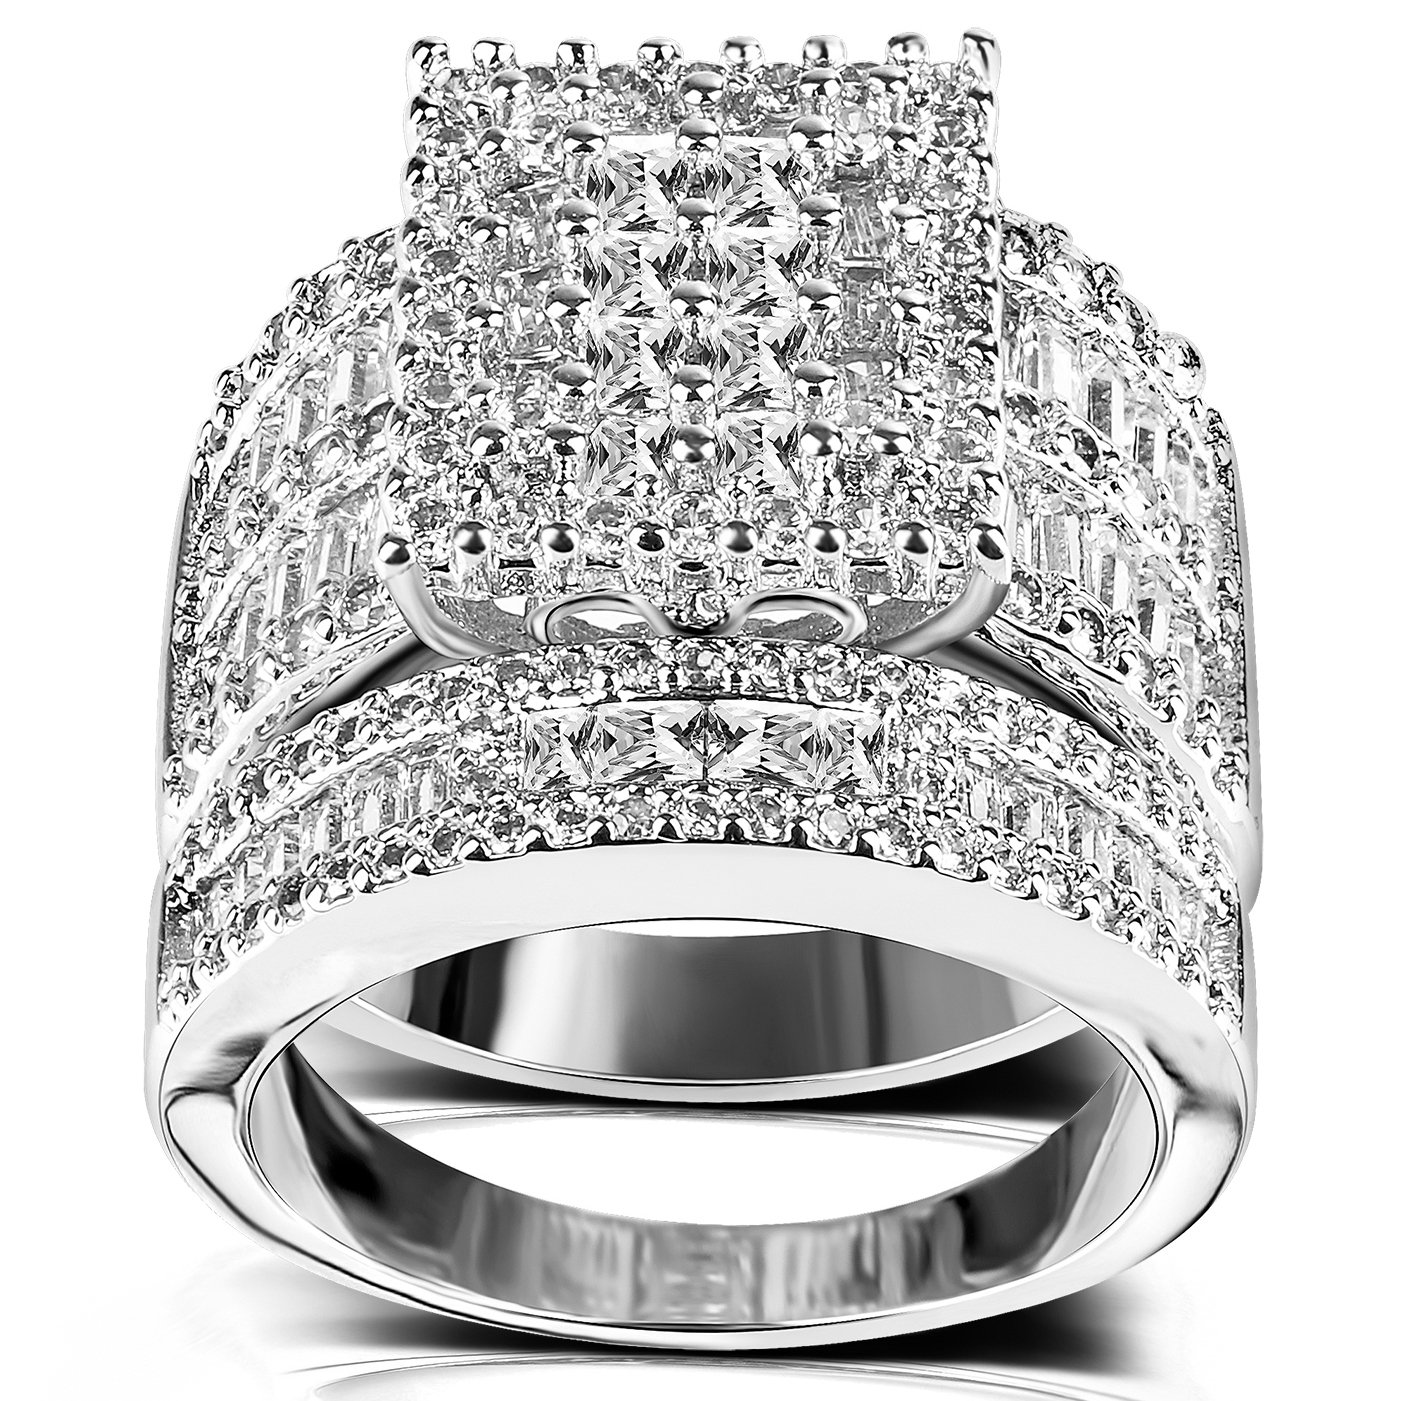 2PCS CZ Stackable Ring Sets - Rectangle Cubic Zirconia Square Engagement Wedding Rings for Women Jewelry Gift (7)